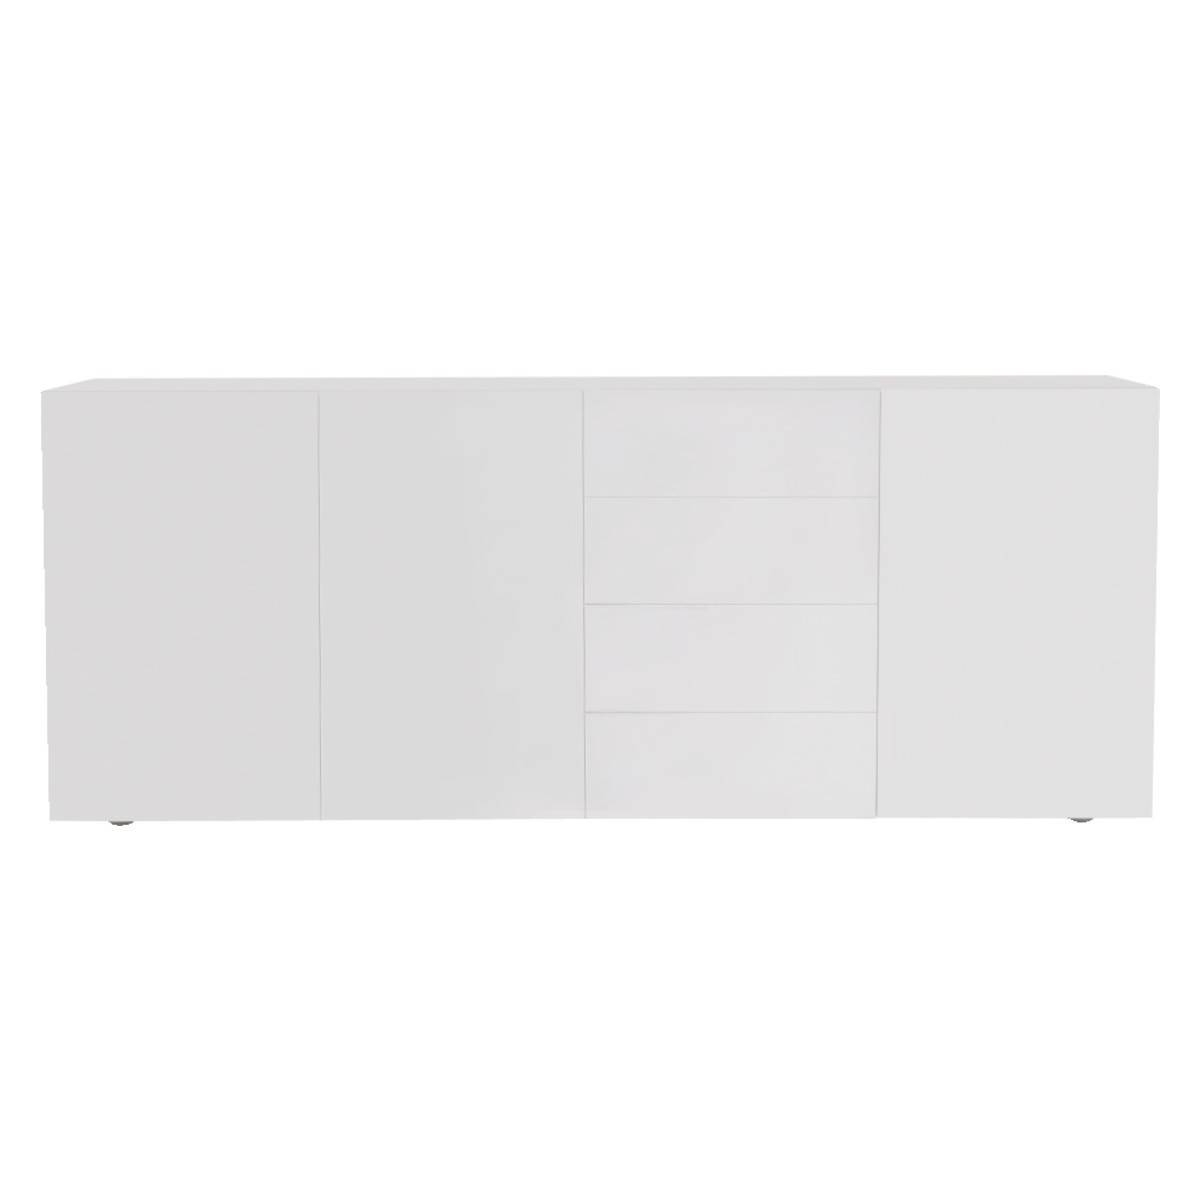 Aspen White High Gloss Sideboard | Buy Now At Habitat Uk regarding Gloss White Sideboards (Image 2 of 30)